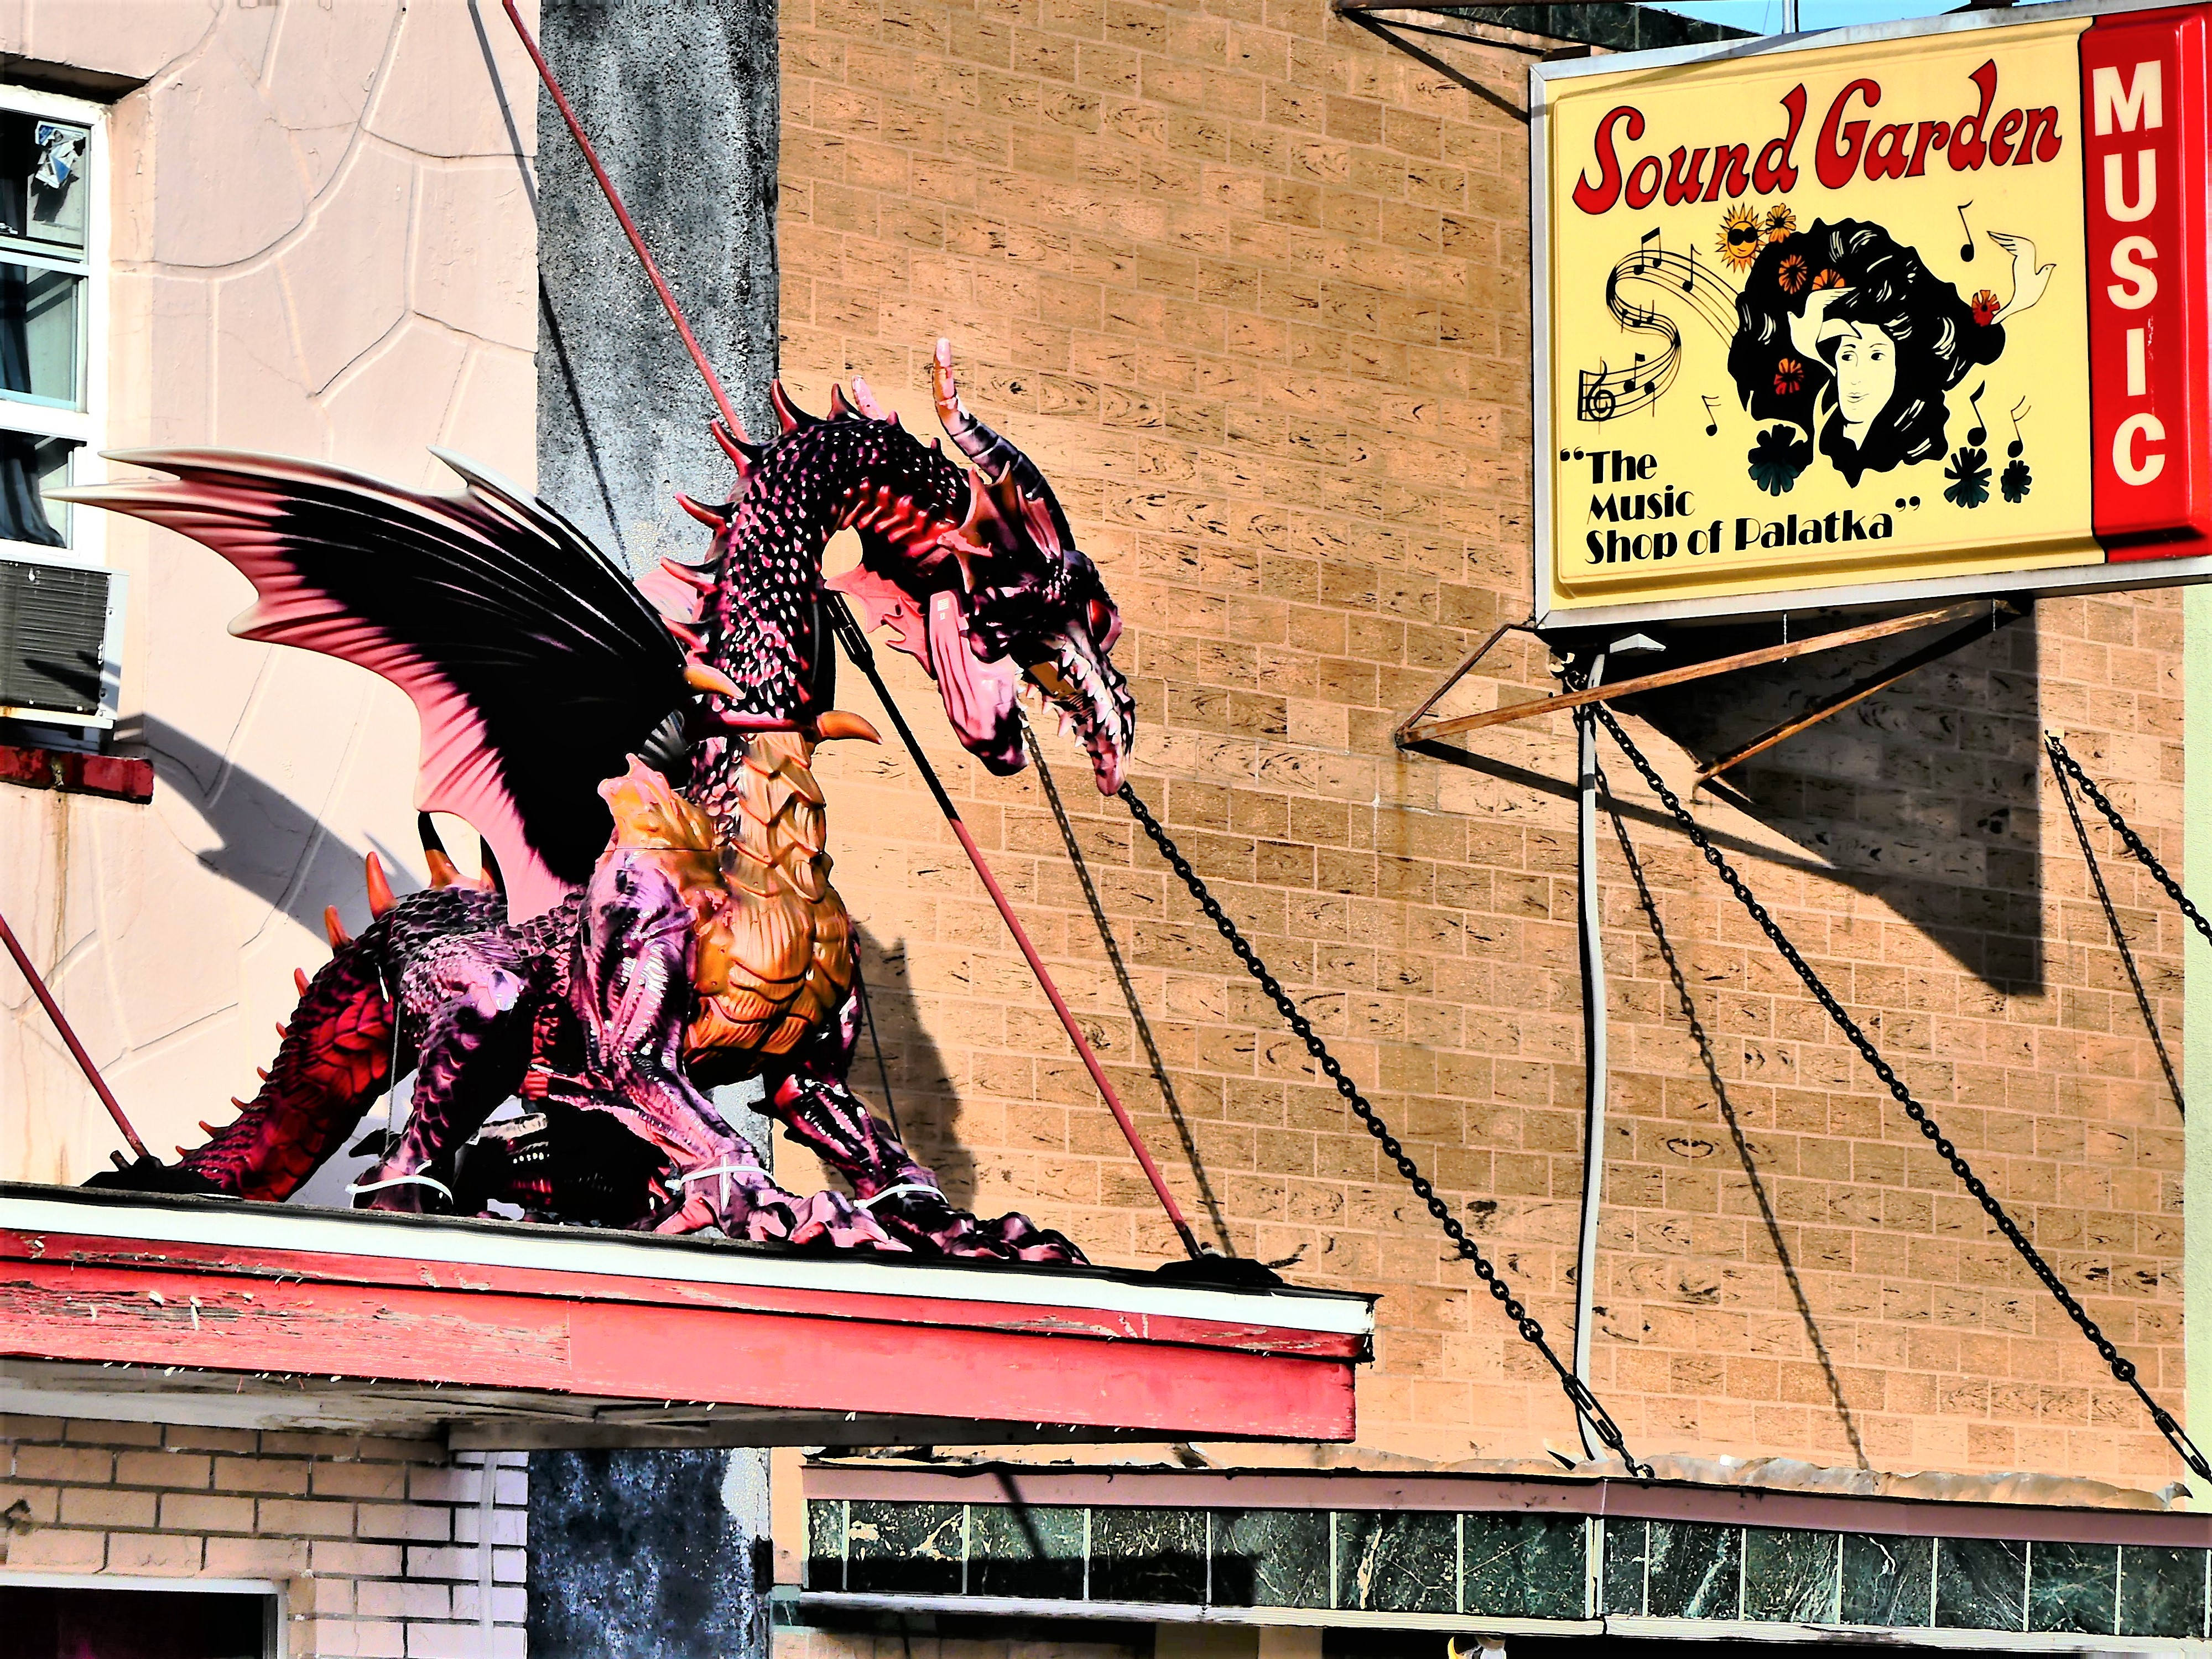 Dragon on a roof